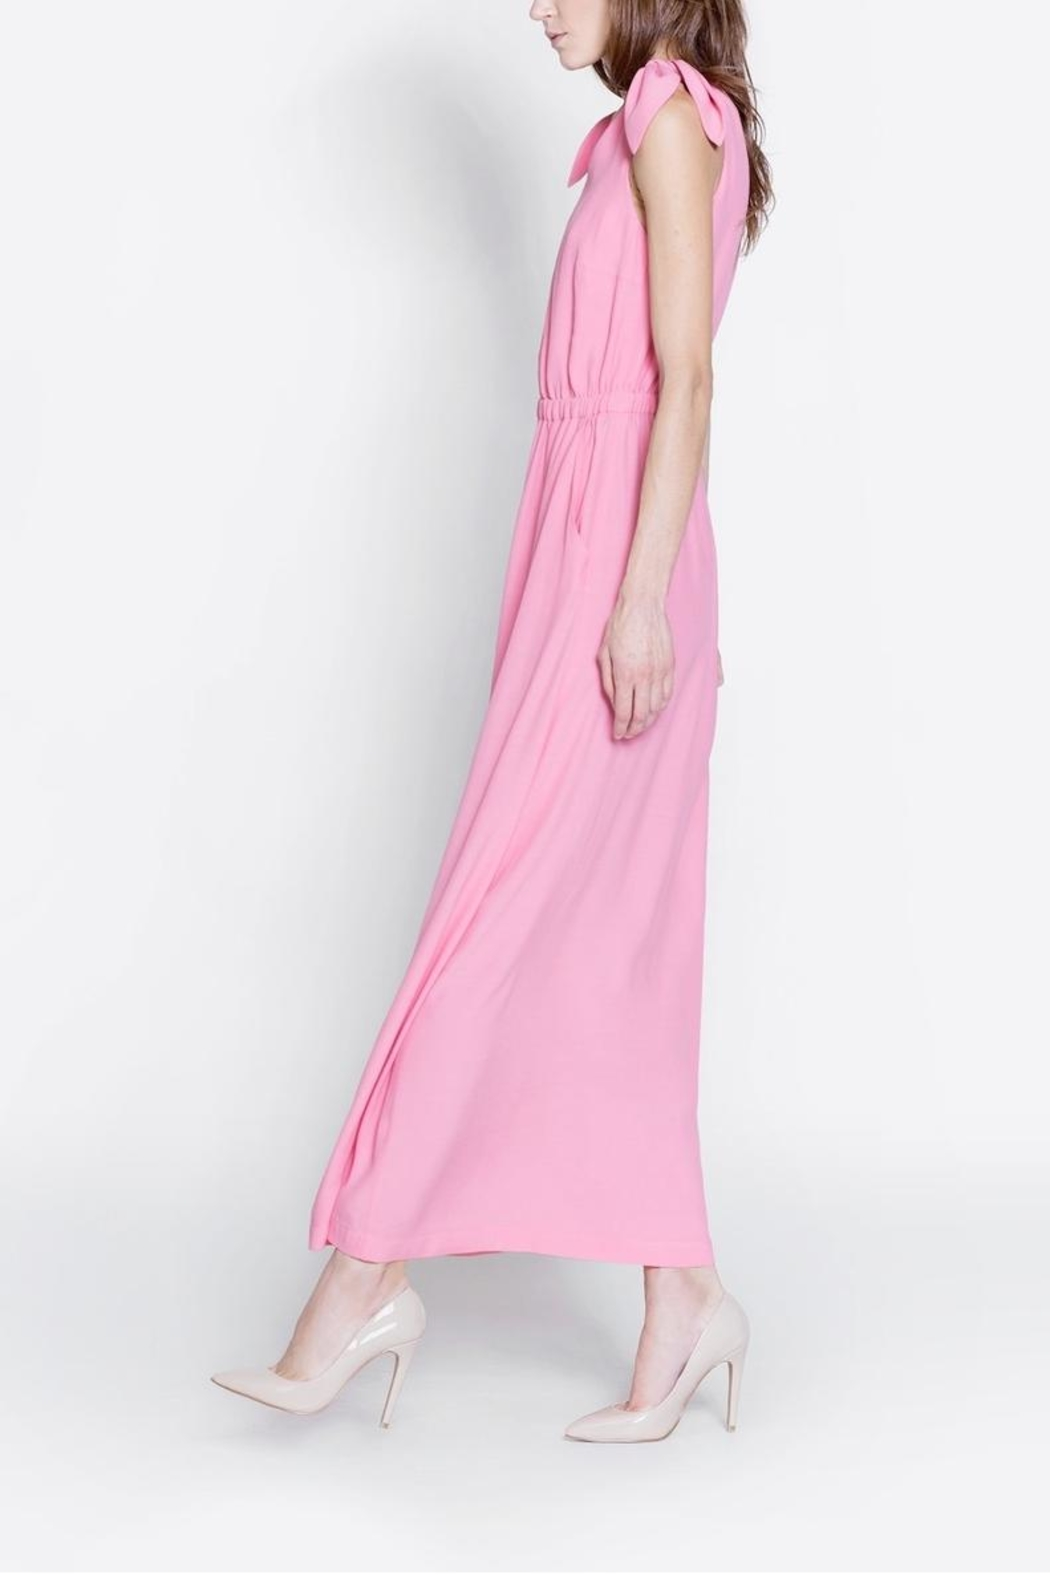 CYRILLE GASSILINE Belmophen Maxi Dress - Main Image